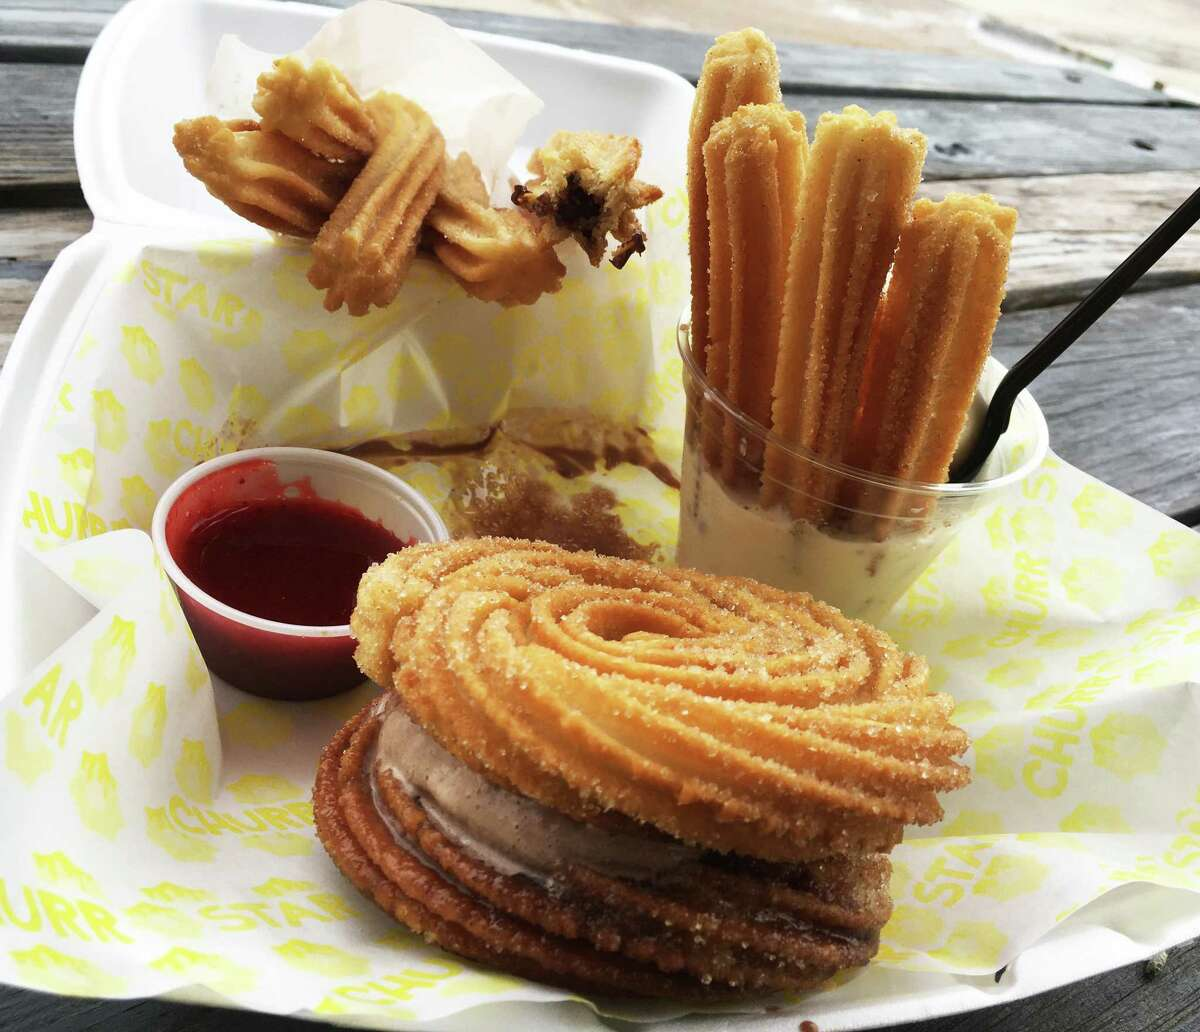 Items at Churro Star include, clockwise from top left, traditional churros with dipping sauce, churro relleno, churro sundae and a churro sandwich.